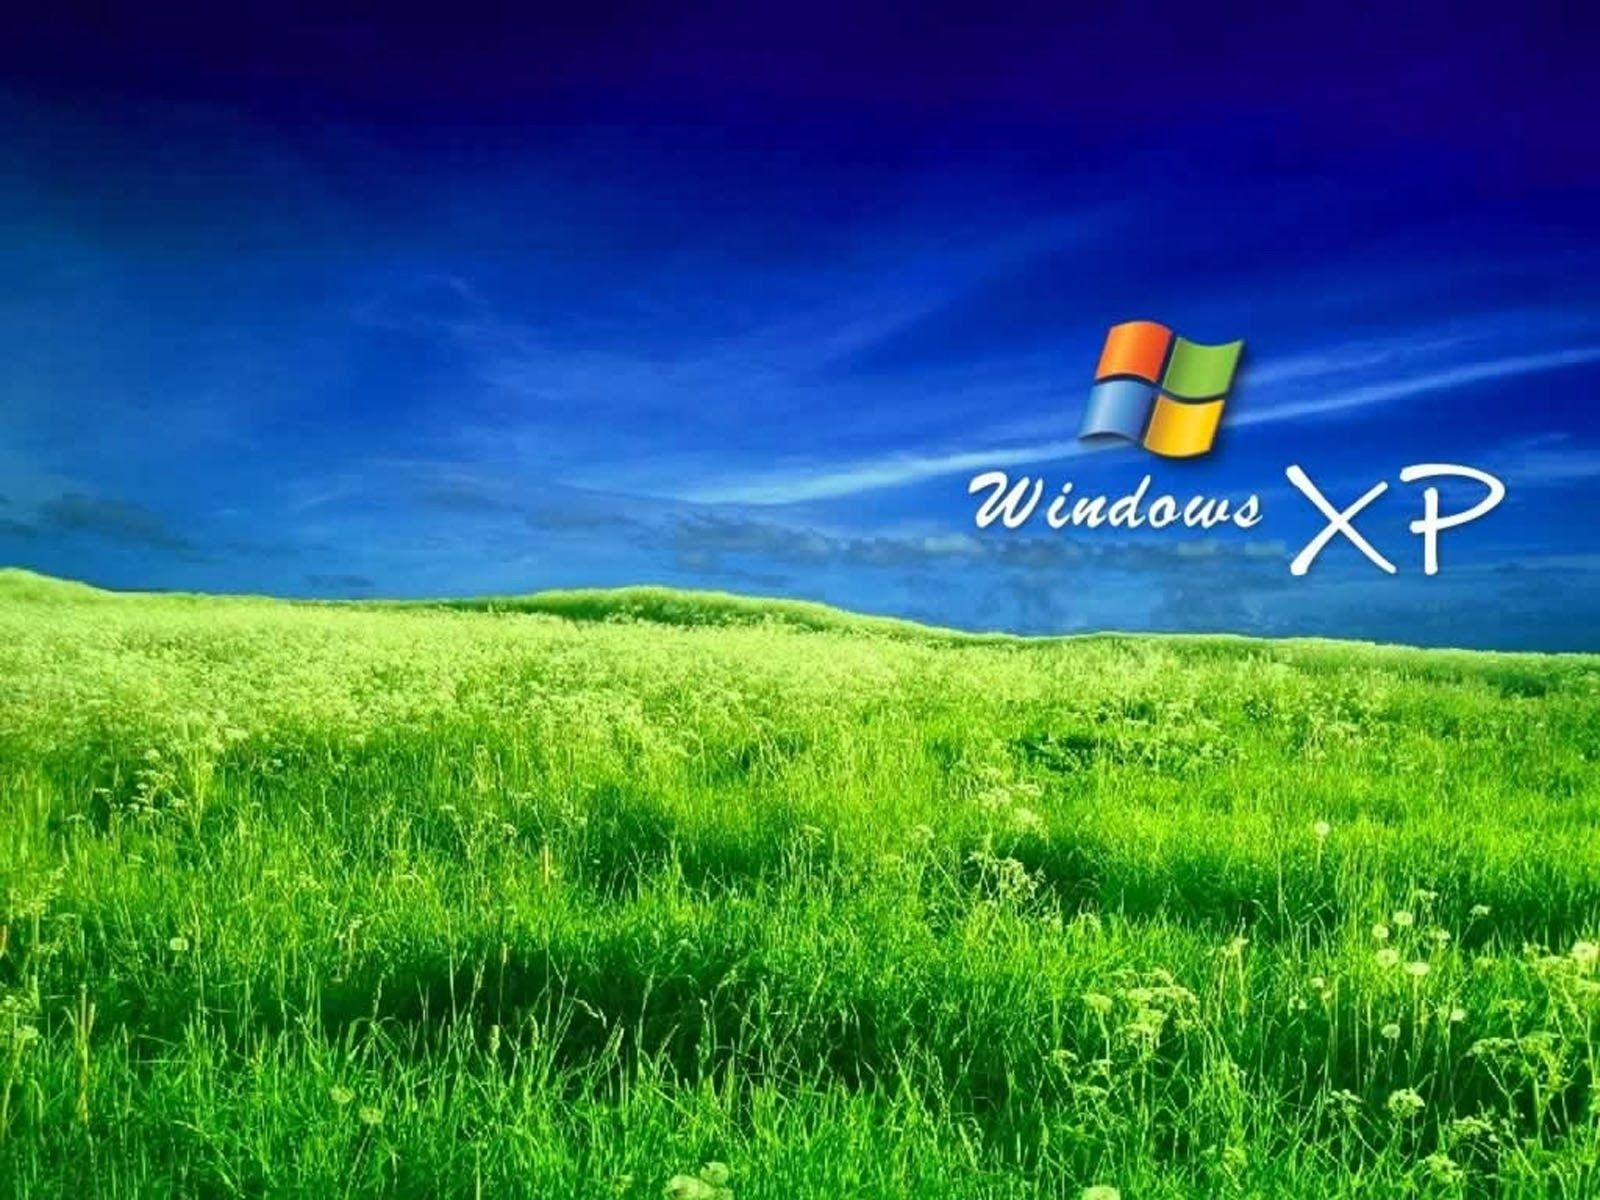 Free Windows XP Wallpapers Wallpaper HD Wallpapers